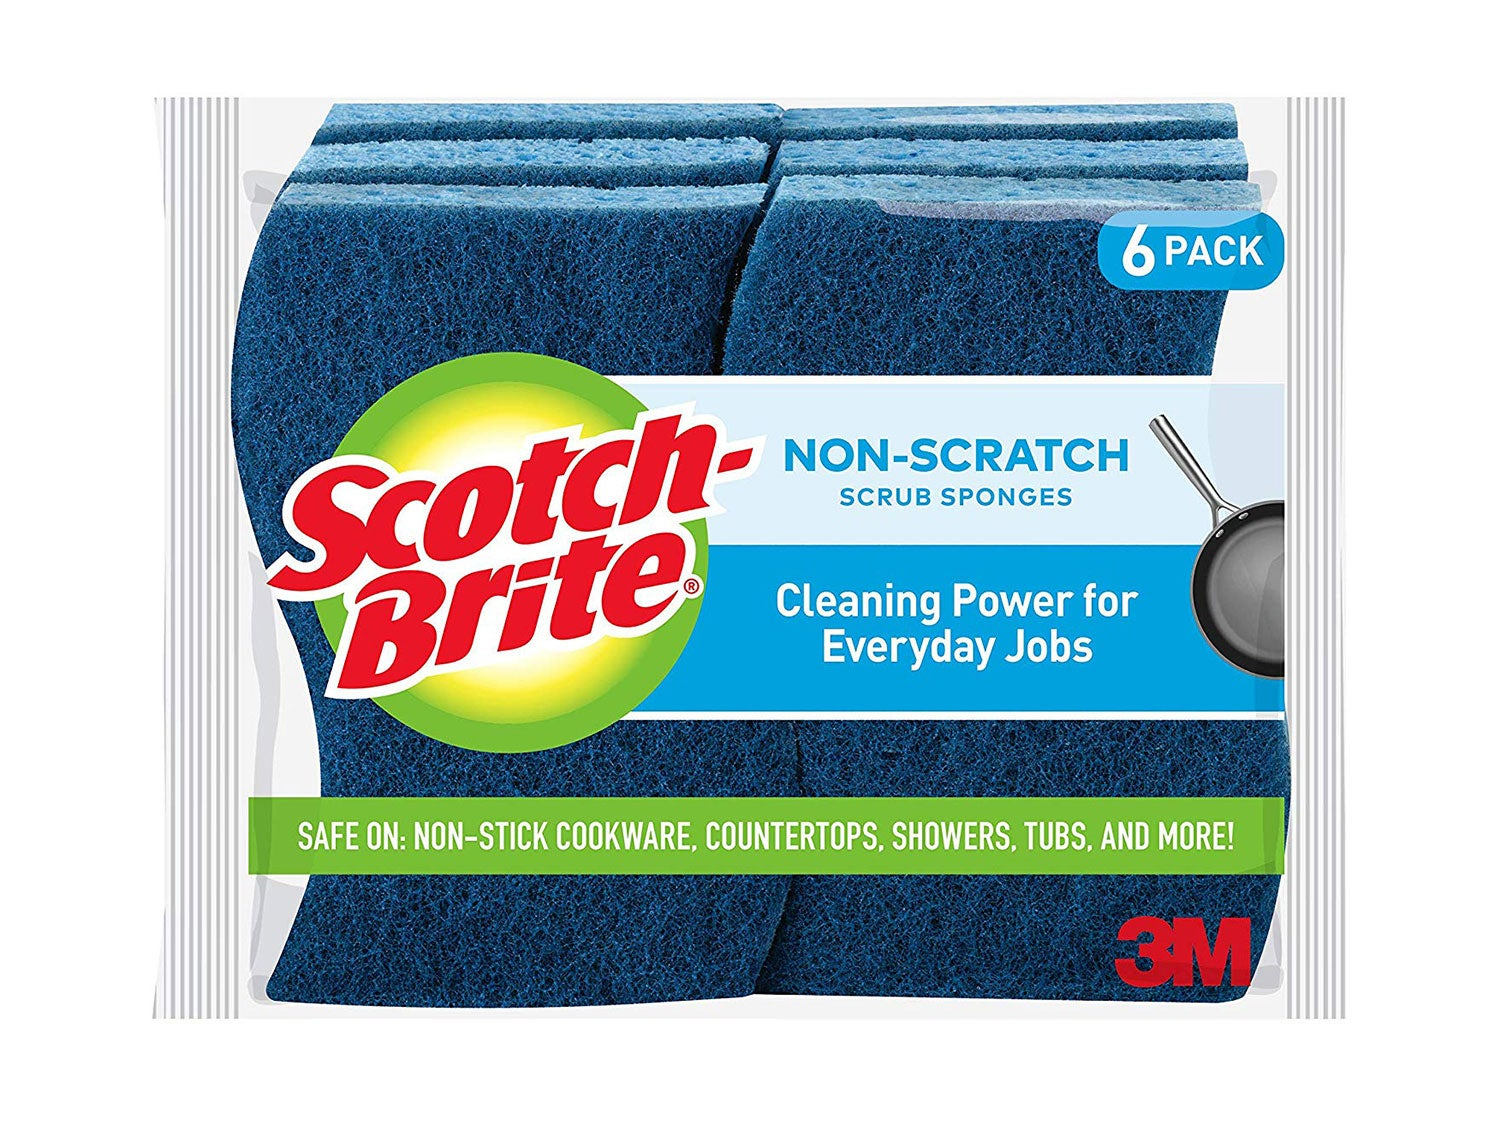 Scotch-Brite Non-Scratch Scrub Sponges, Cleaning Power for Everyday Jobs, Stands Up to Stuck-on Grime, 6 Scrub Sponges